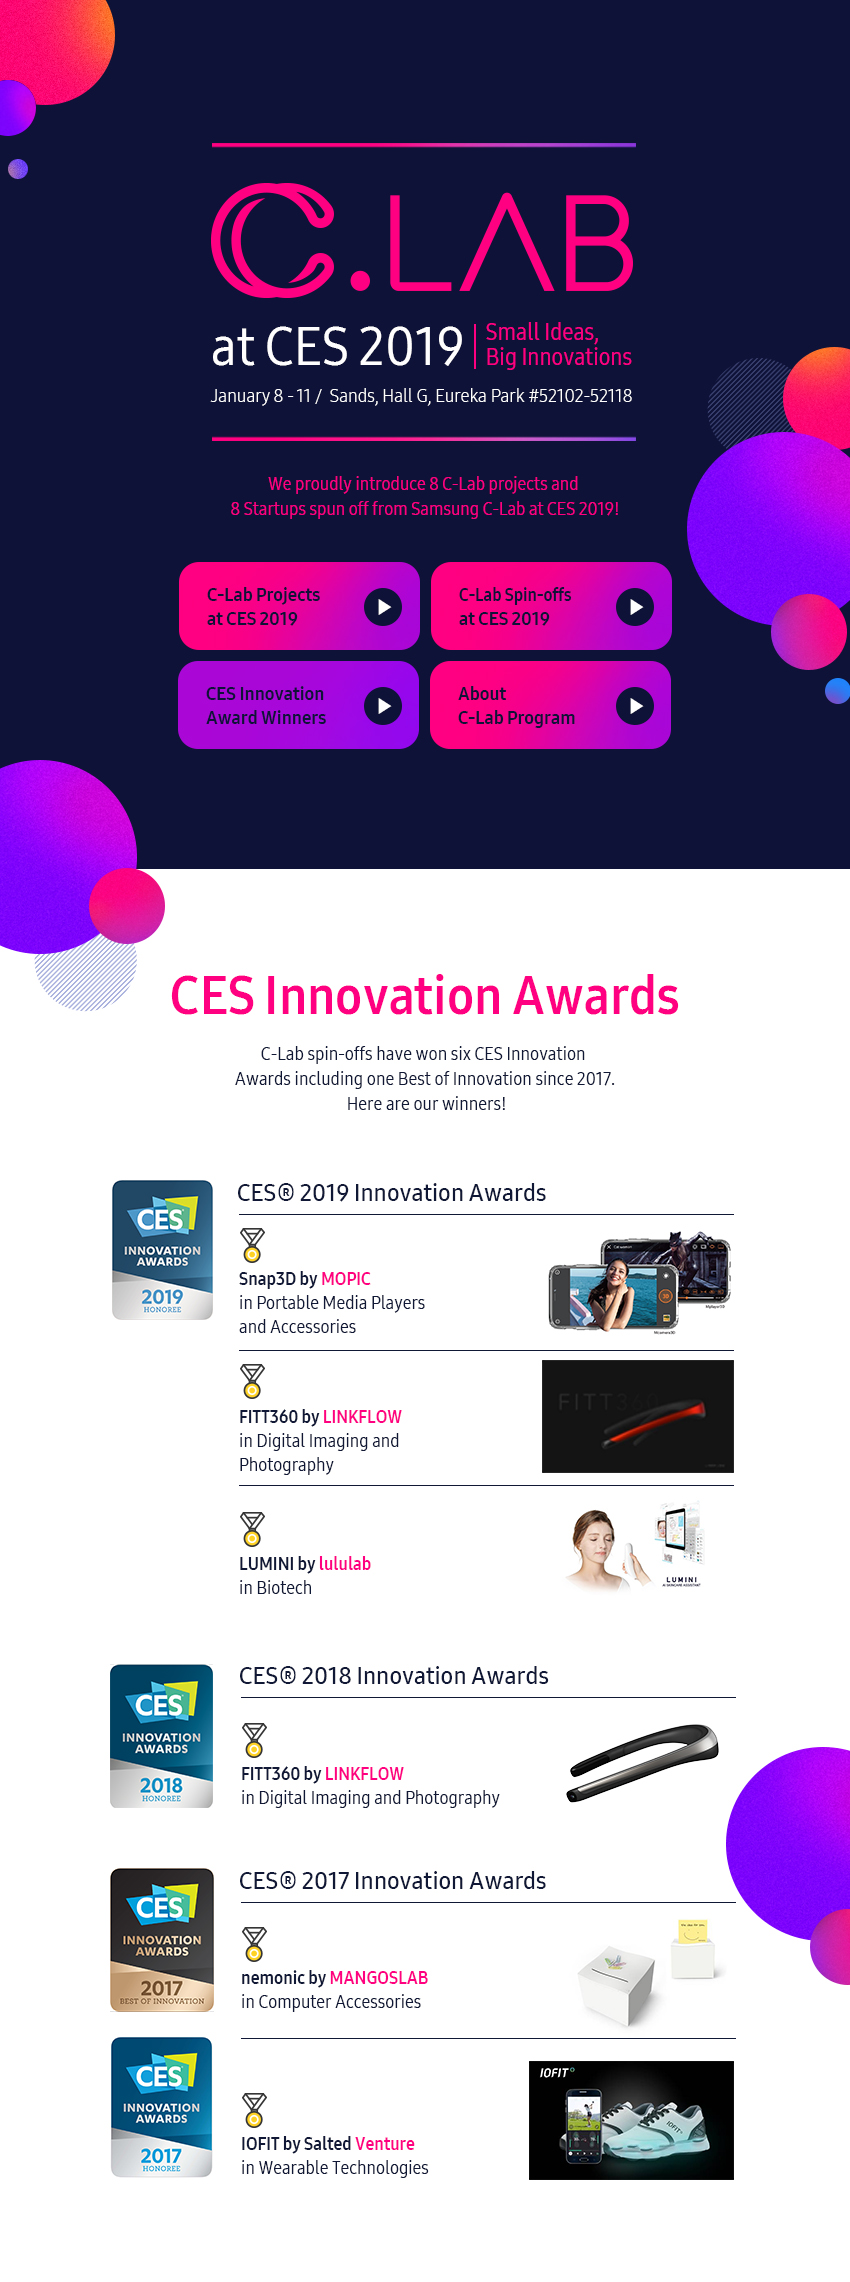 CES Innovation Award Winners